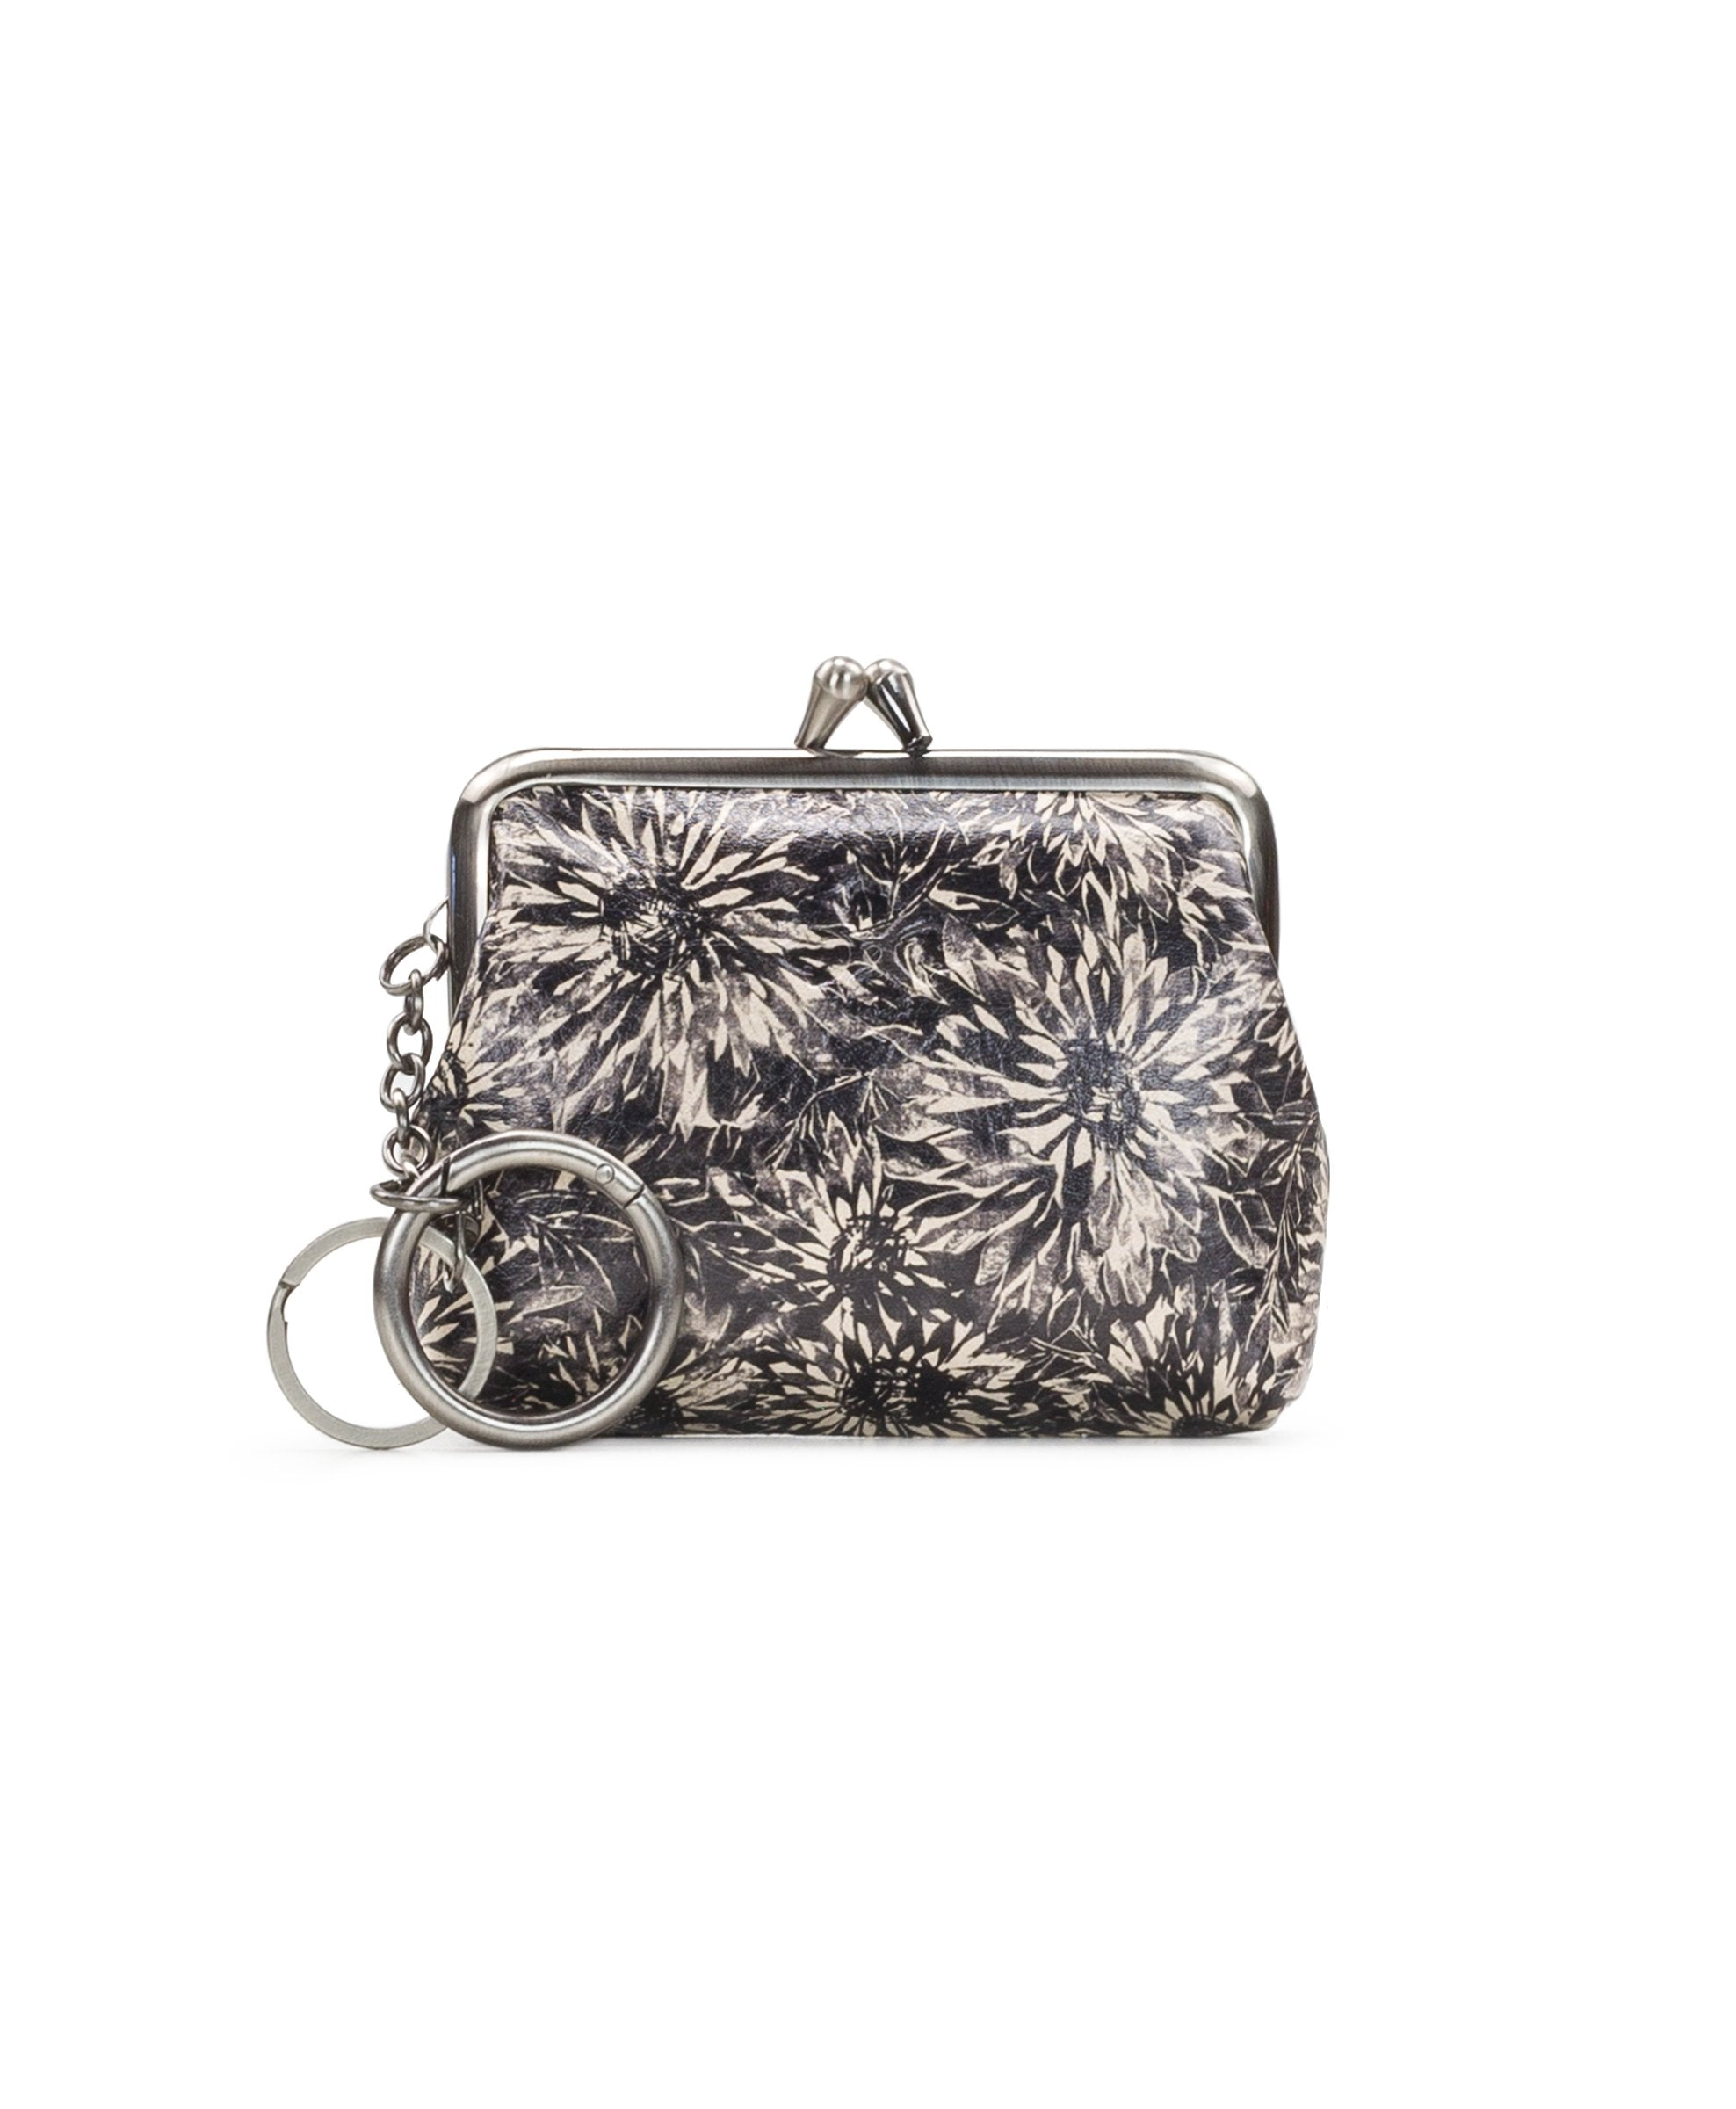 Borse Coin Purse - Sunflower Print